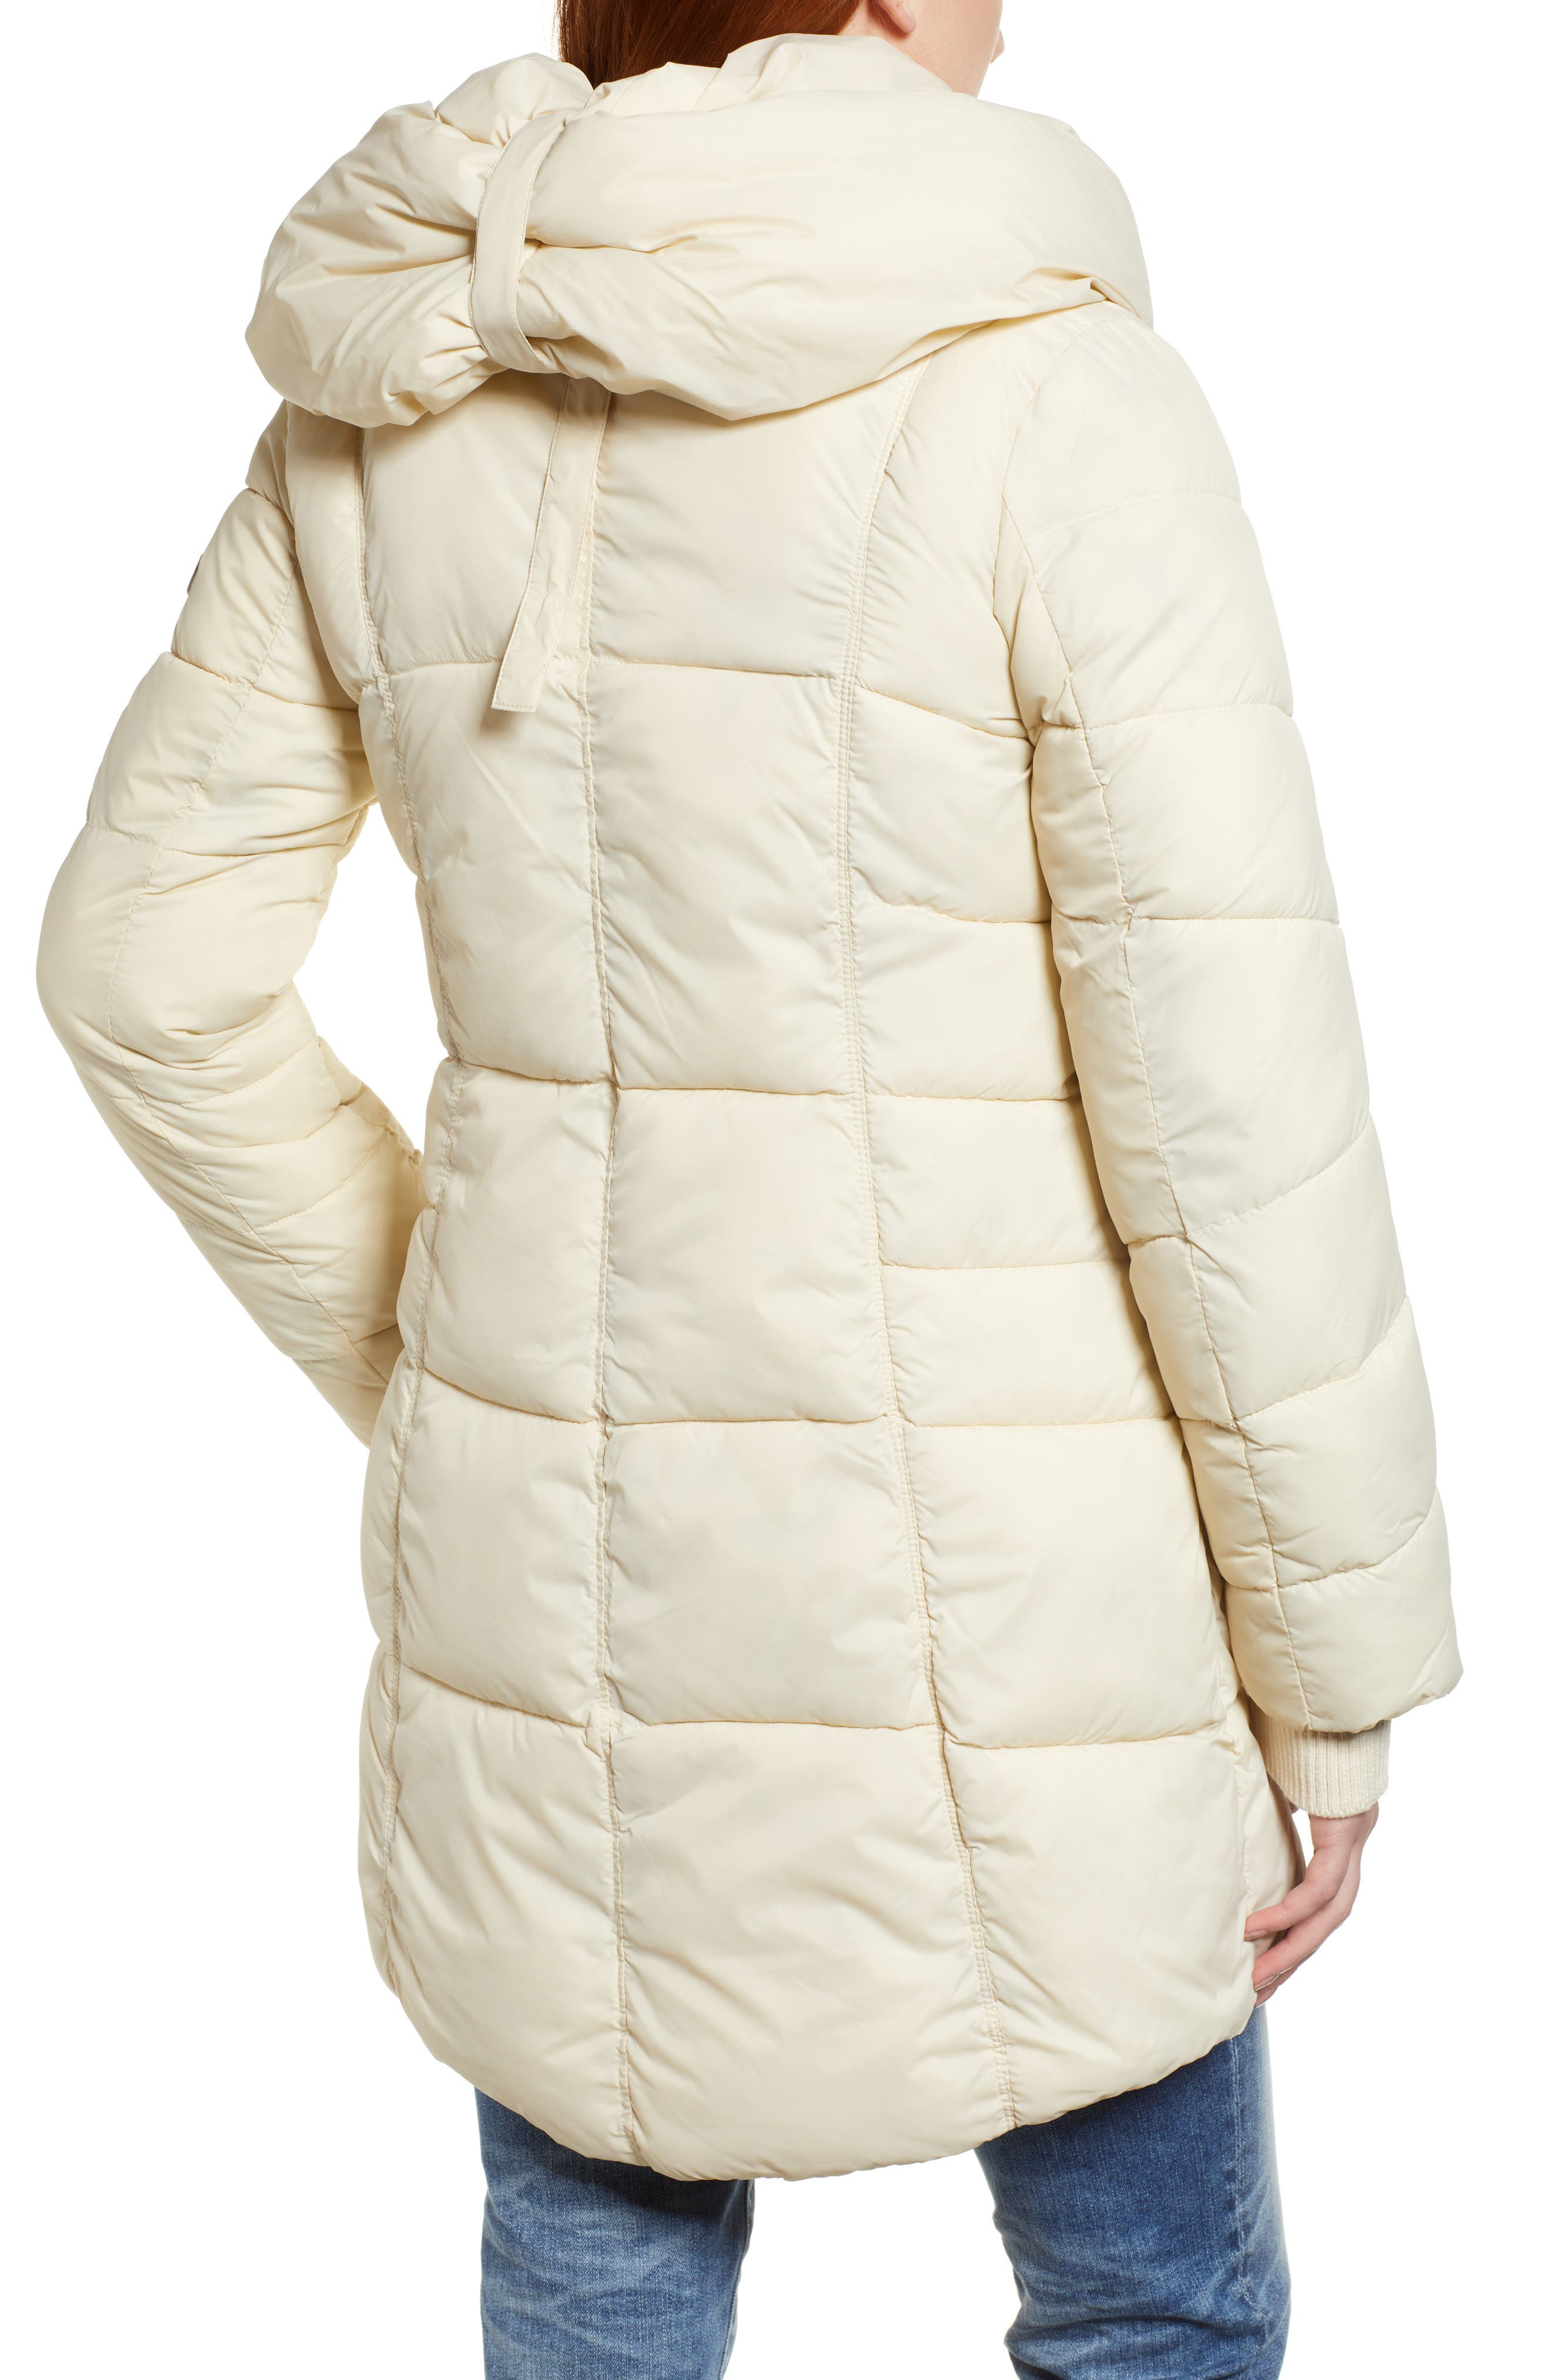 Pillow Collar Puffer Coat,                             Alternate thumbnail 2, color,                             IVORY